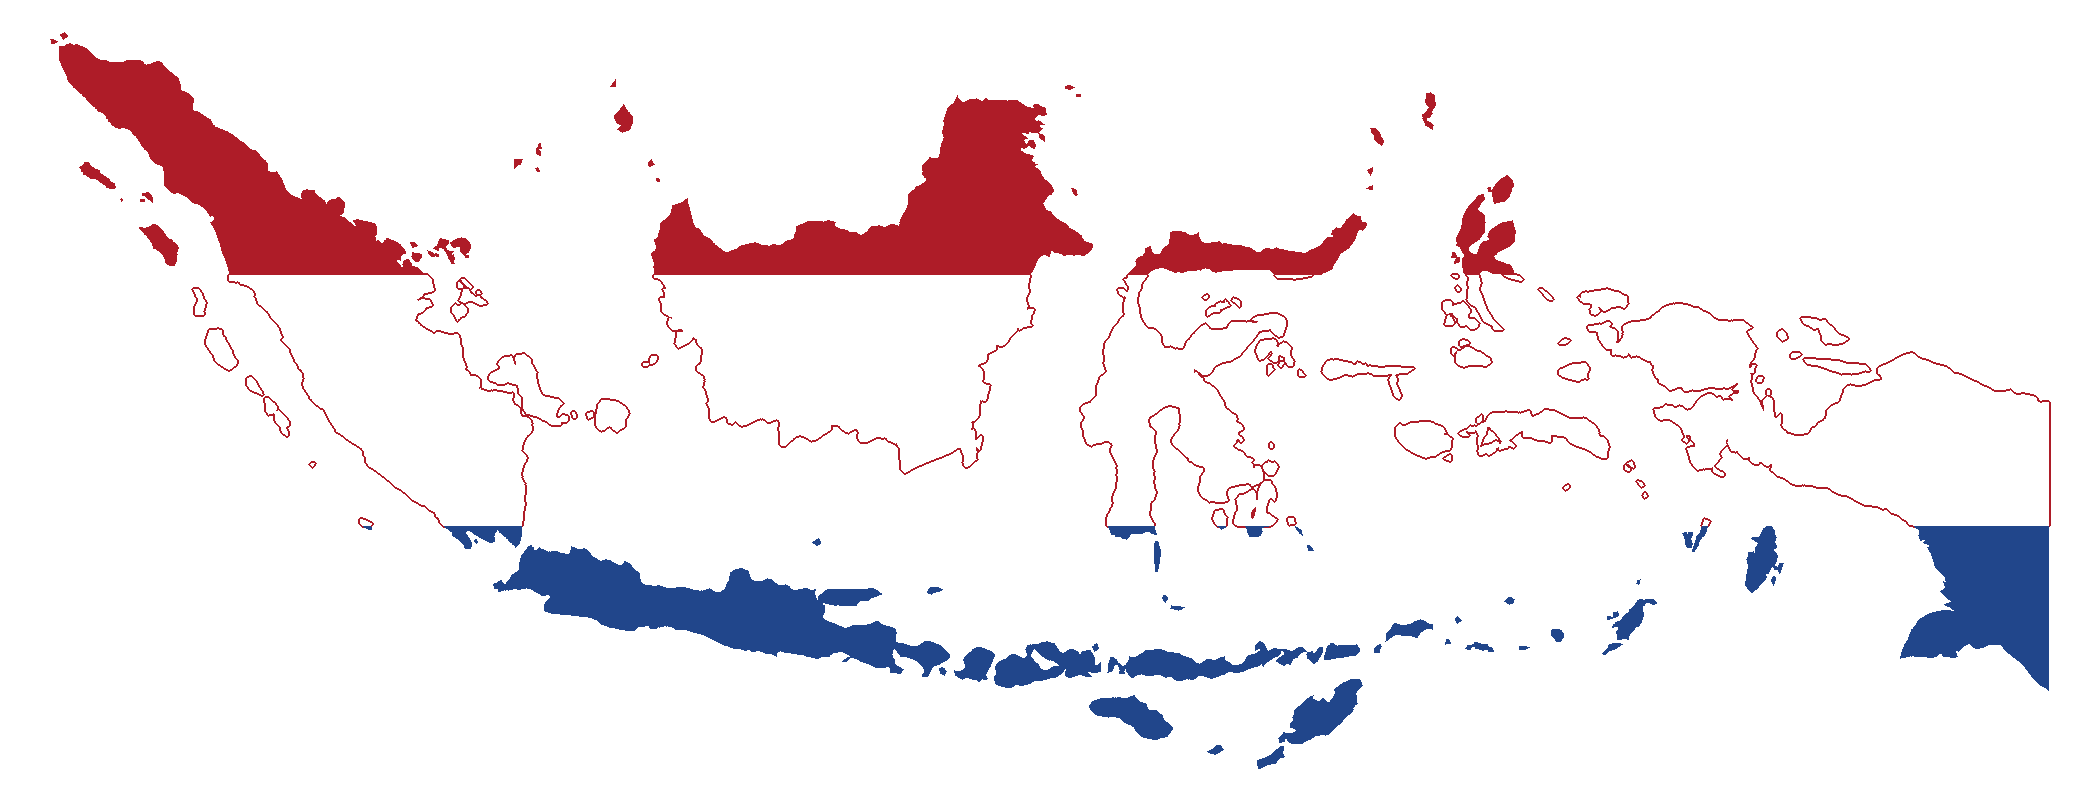 File:Flag map of Dutch East Indies (1800 - 1949).png ...